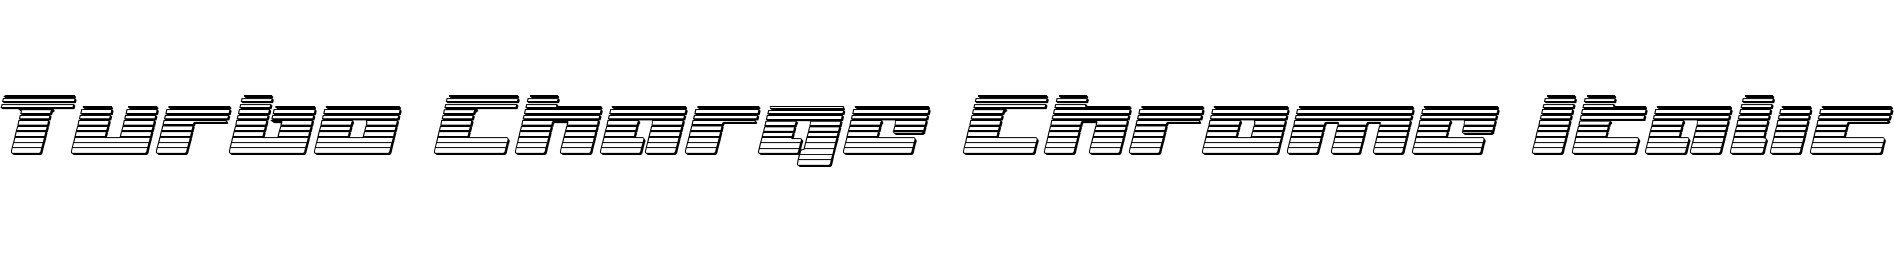 Turbo Charge Chrome Italic